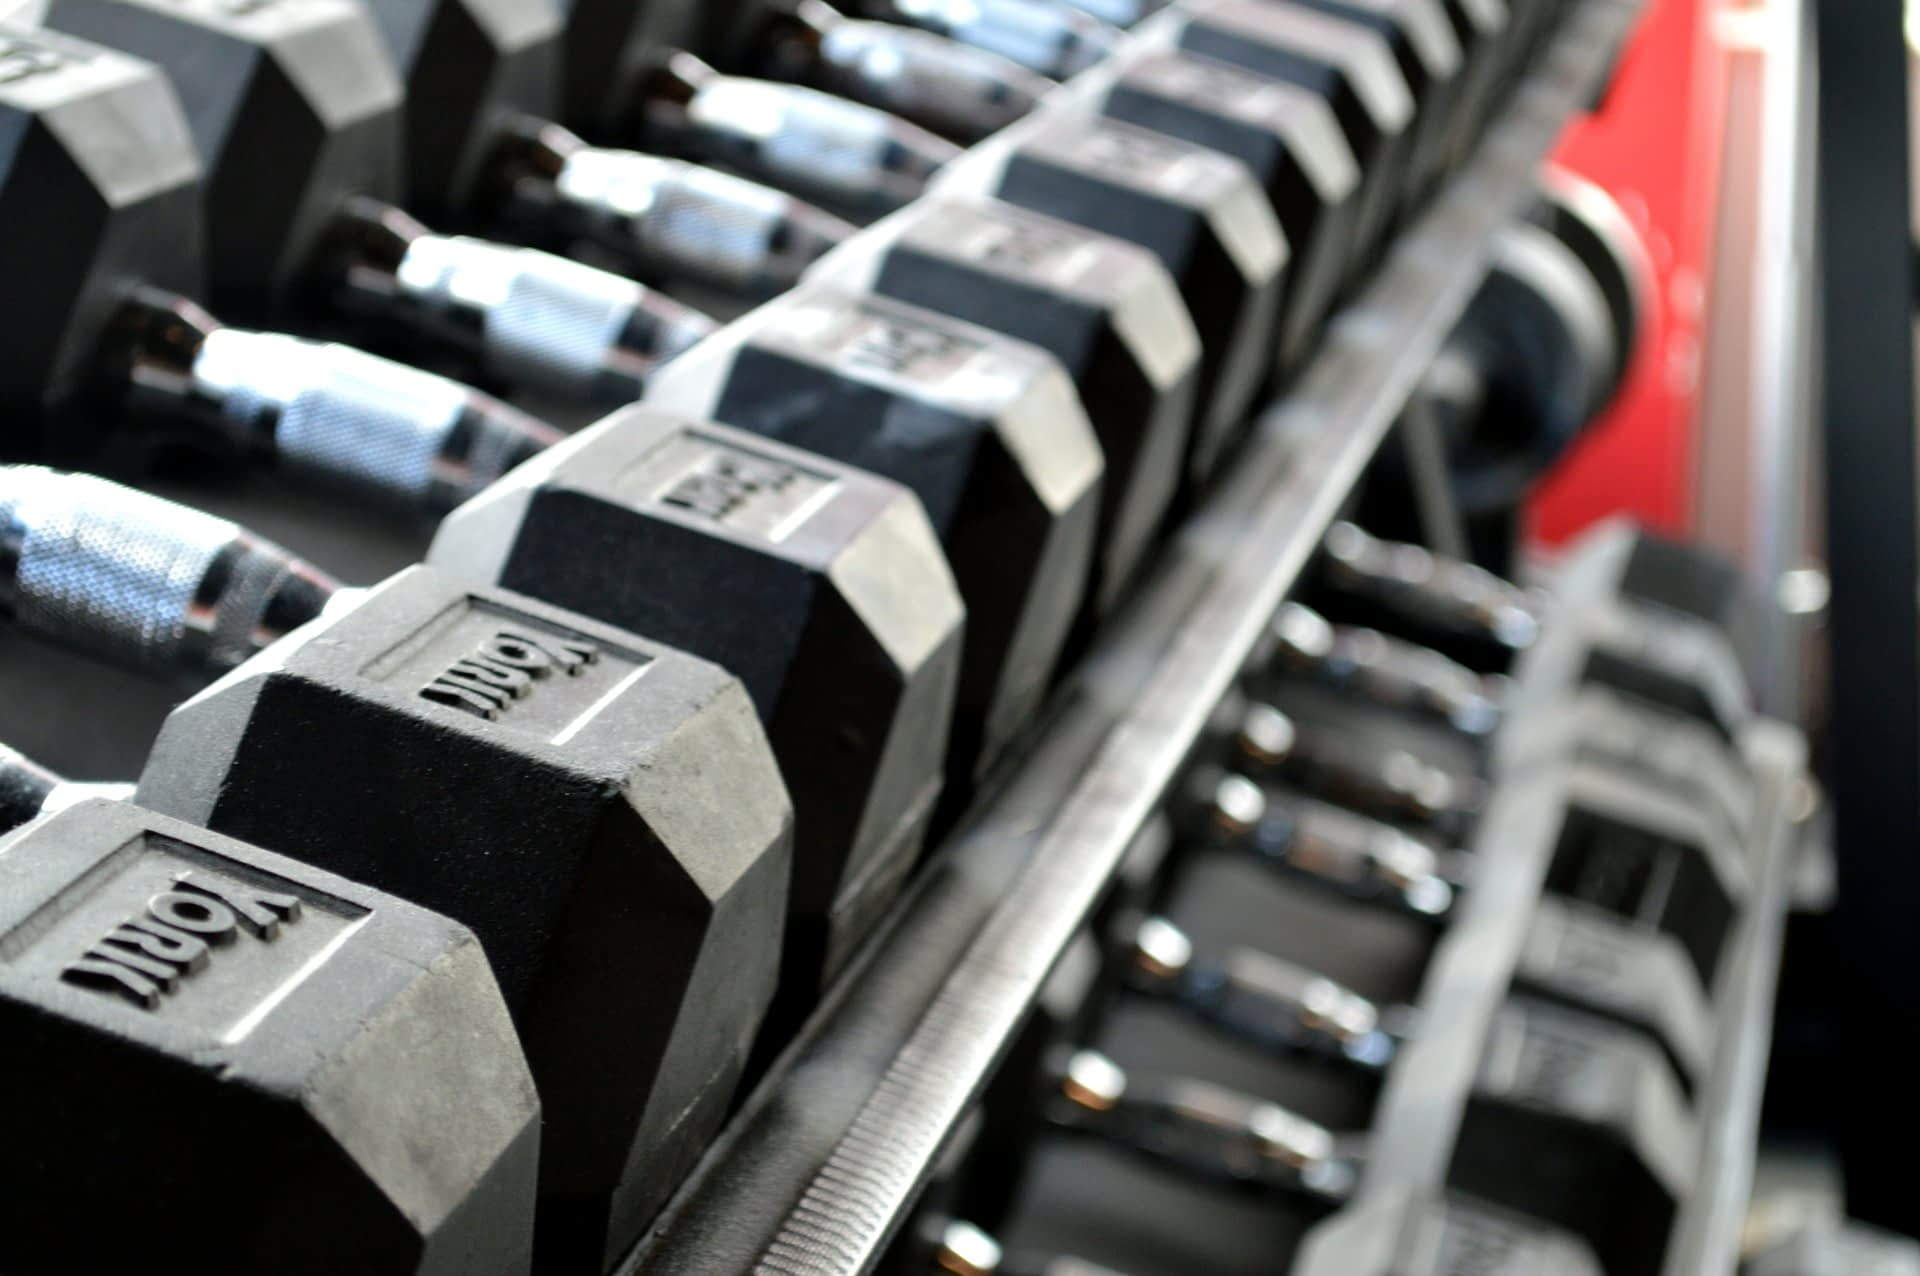 Below is a list of some of the best gym equipment for weight loss and toning